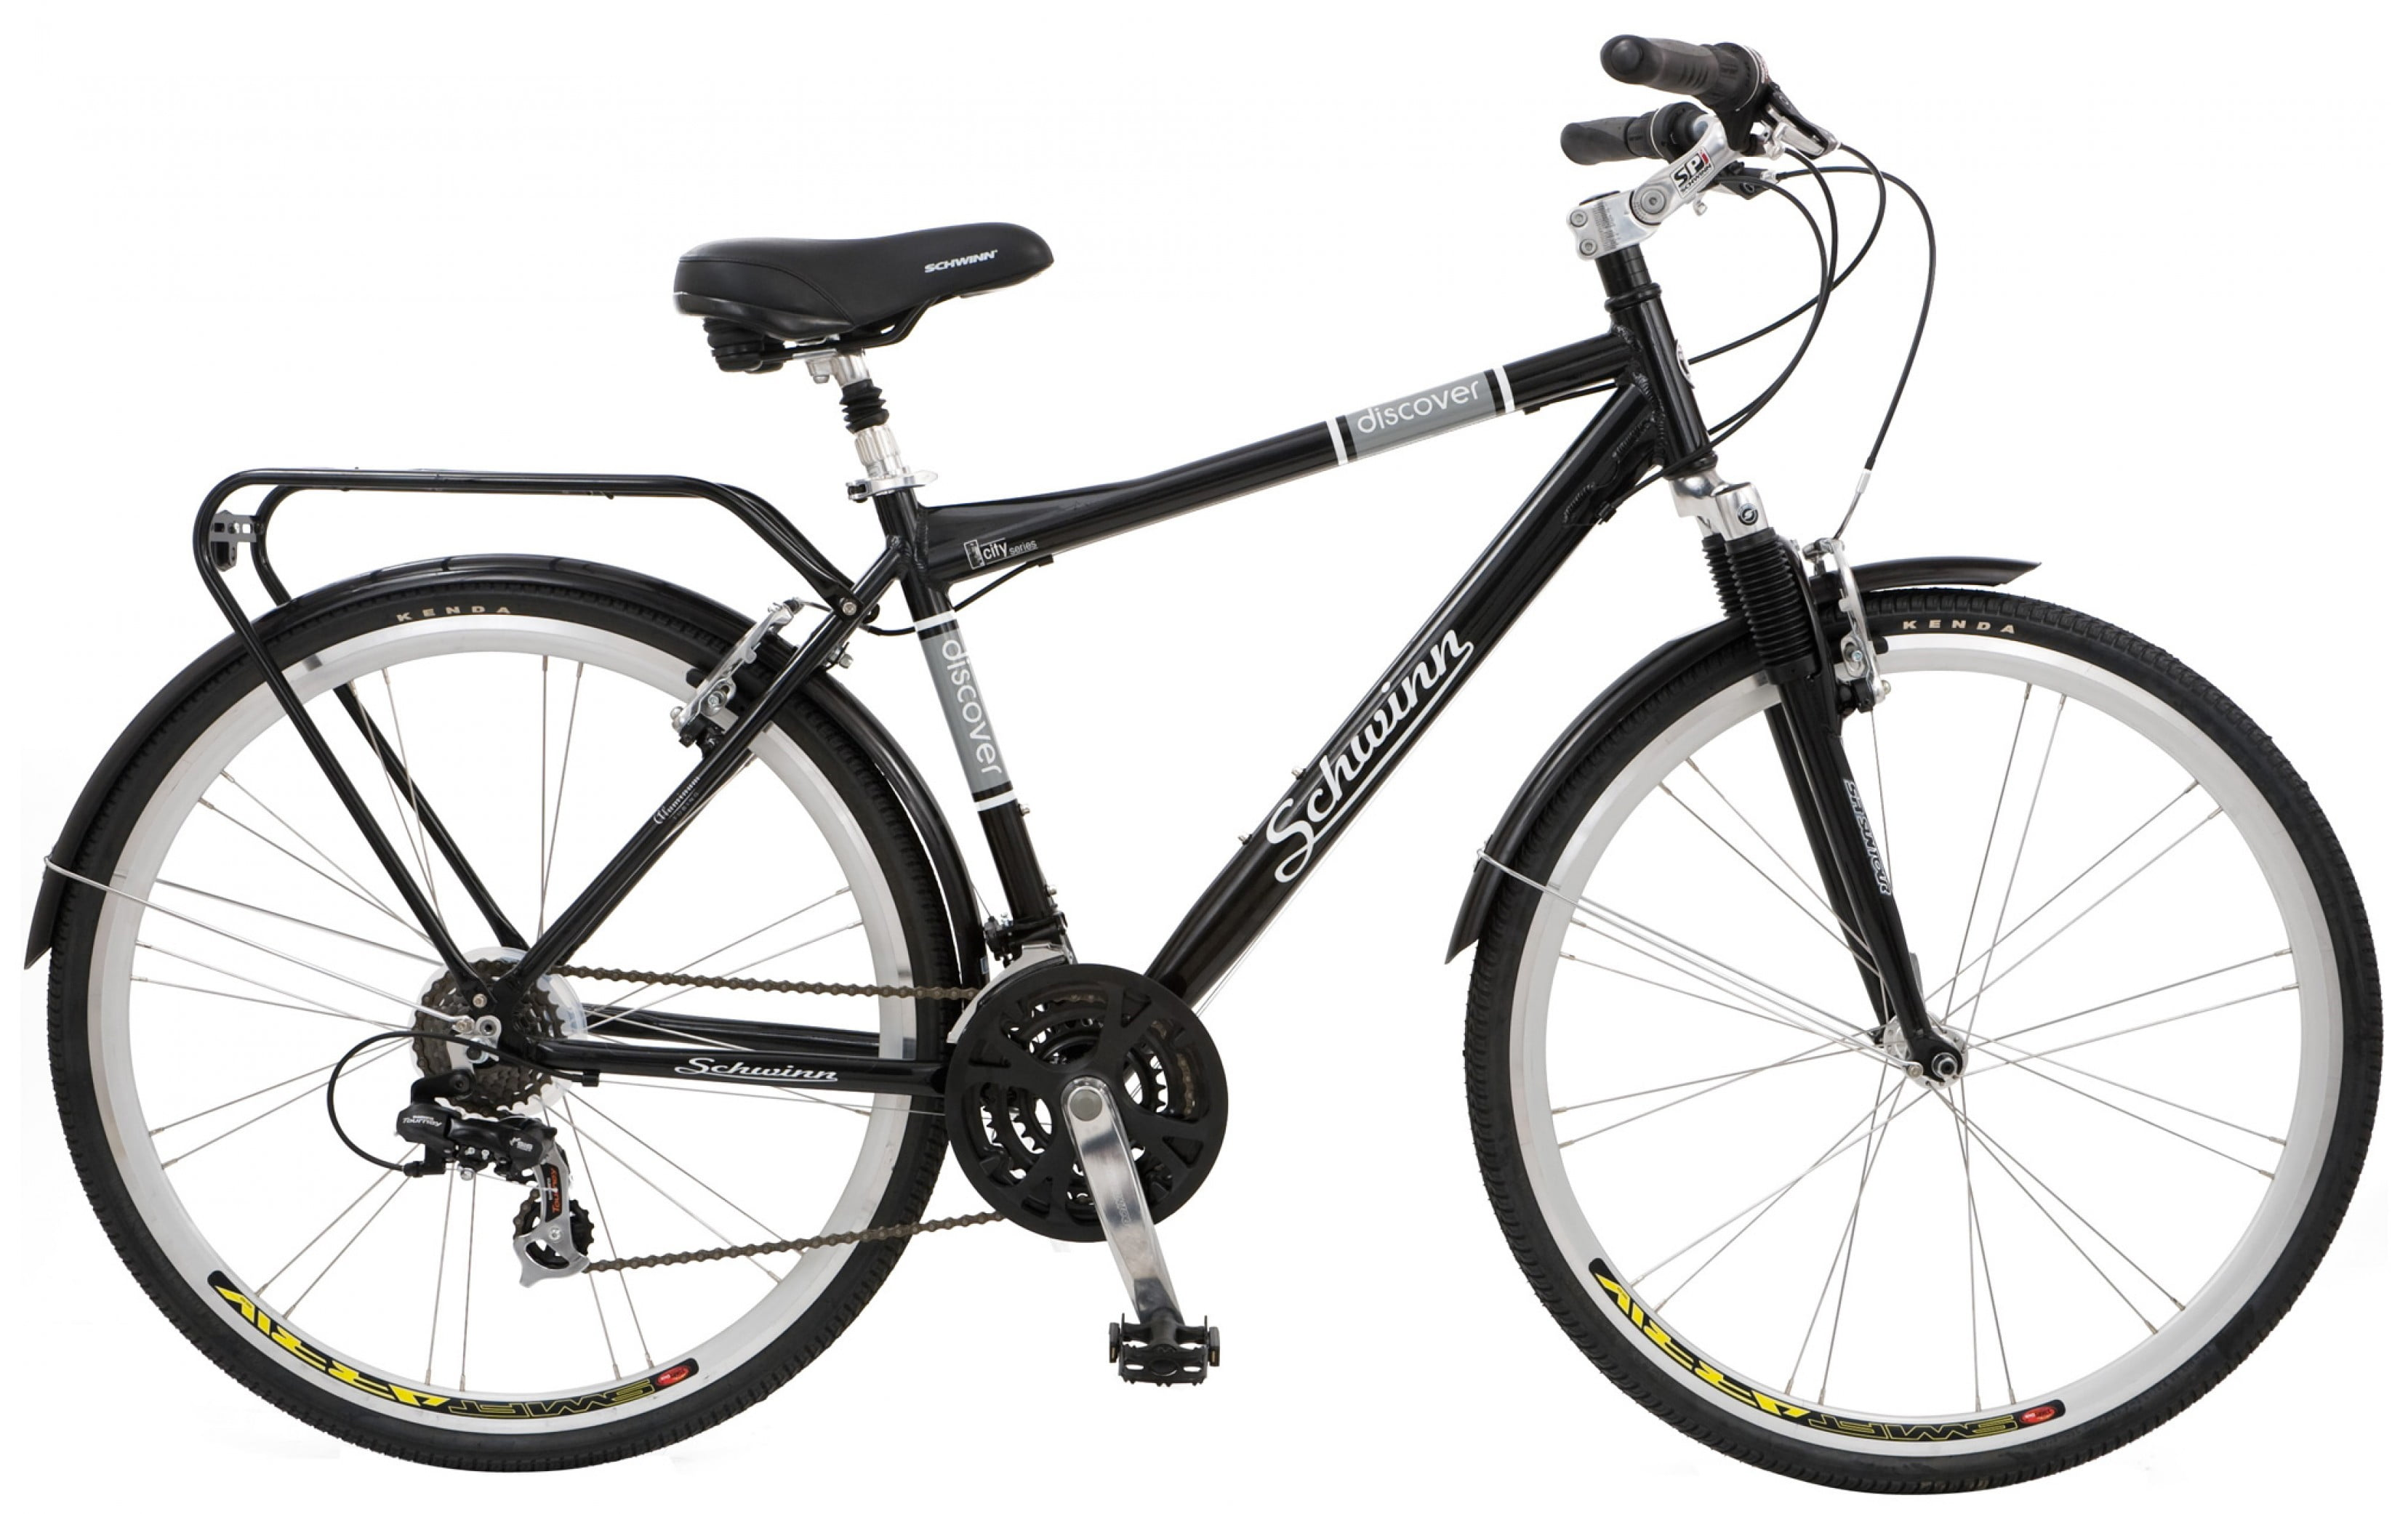 Schwinn Discover 700c Hybrid Bicycle with Full Fenders and Rear Cargo Rack - Walmart.com - Walmart.com